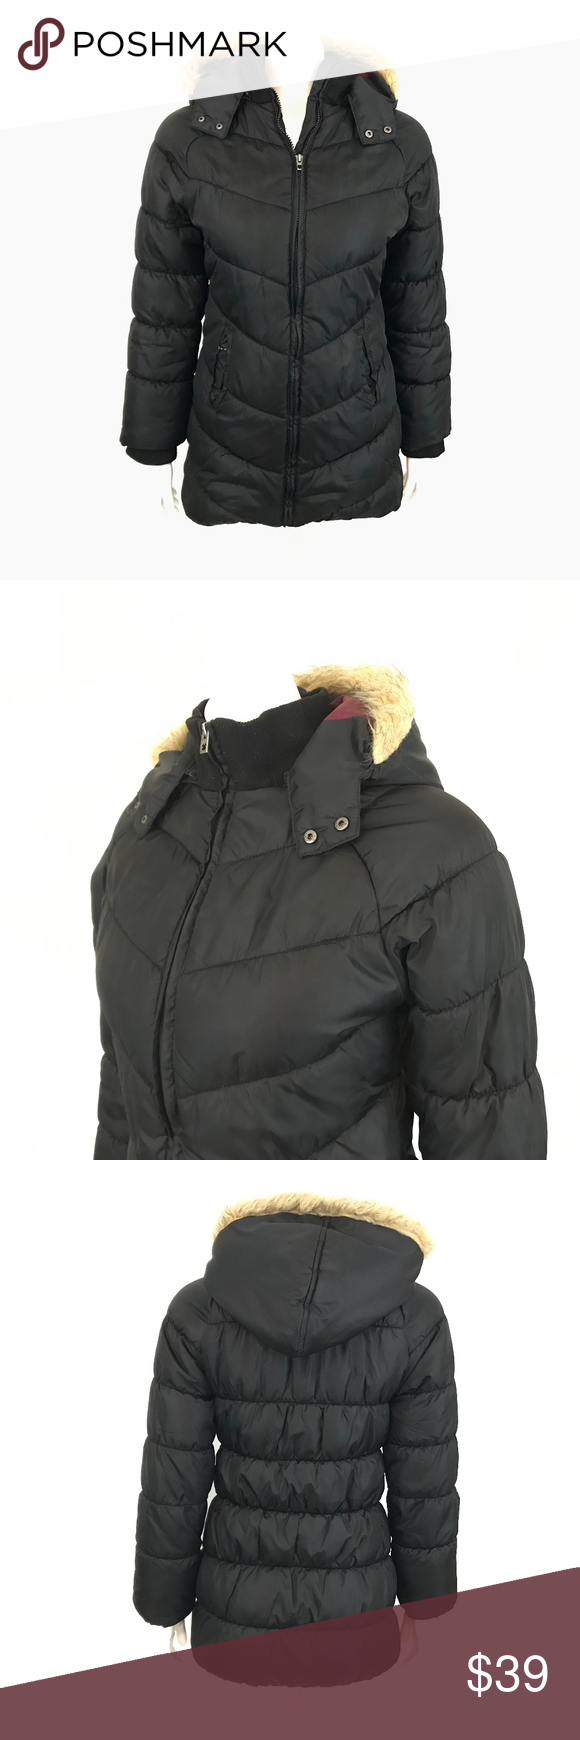 Lucky Brand Black Puffer Style Jacket Coat Hood L Lucky Brand Puffer Style Jacket Coat Women S Size L Ins With Images Black Puffer Hooded Coat Lucky Brand [ 1740 x 580 Pixel ]